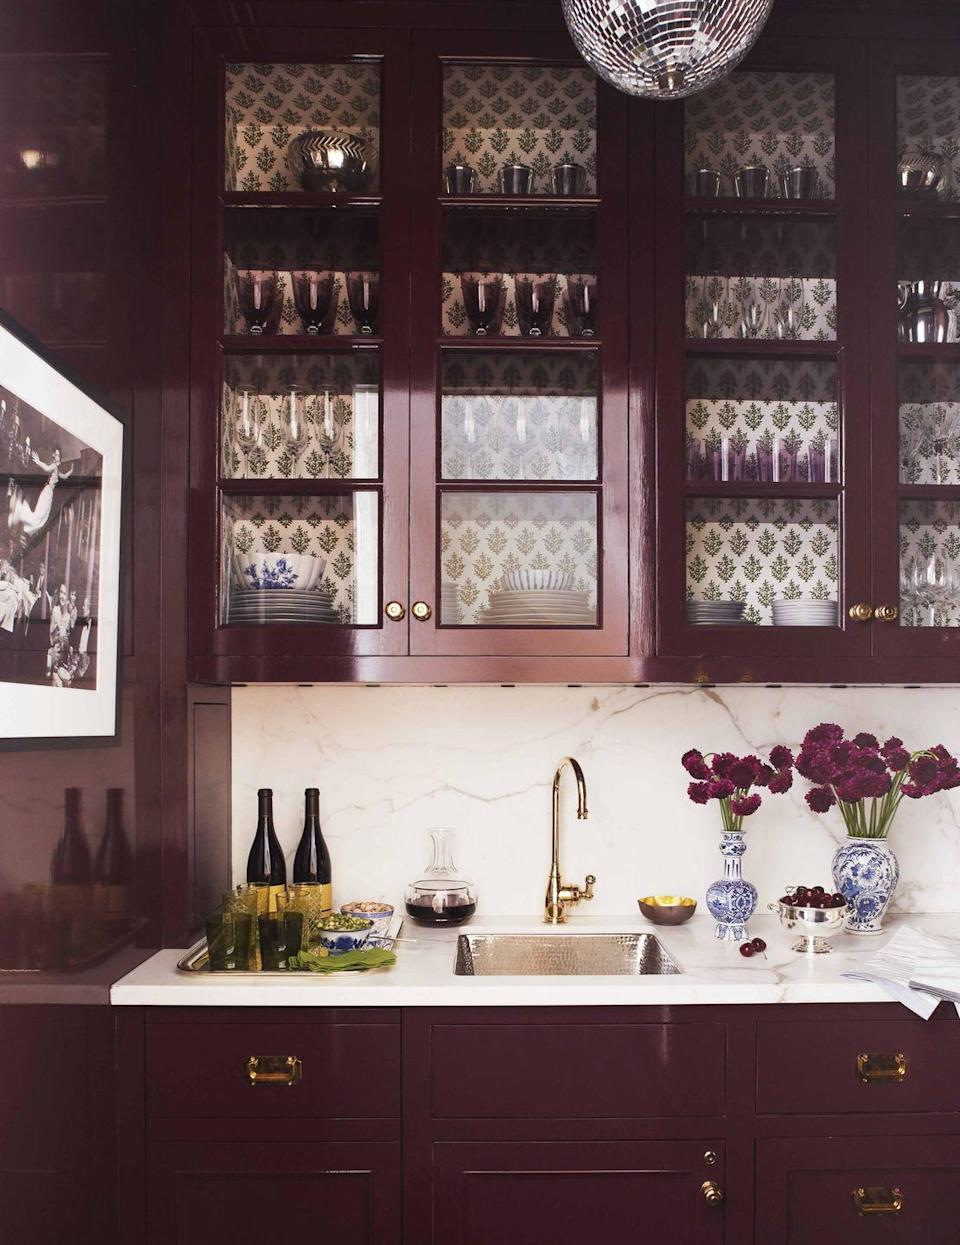 """<p>In this butler's pantry designed by <a href=""""http://www.ashleywhittakerdesign.com/"""" rel=""""nofollow noopener"""" target=""""_blank"""" data-ylk=""""slk:Ashley Whittaker"""" class=""""link rapid-noclick-resp"""">Ashley Whittaker</a>, a disco ball adds sparkle to walls and millwork lacquered in a custom <a href=""""https://www.finepaintsofeurope.com/"""" rel=""""nofollow noopener"""" target=""""_blank"""" data-ylk=""""slk:Fine Paints of Europe"""" class=""""link rapid-noclick-resp"""">Fine Paints of Europe</a> color. The cabinets are backed in a <a href=""""http://www.murielbrandolini.com/"""" rel=""""nofollow noopener"""" target=""""_blank"""" data-ylk=""""slk:Muriel Brandolini"""" class=""""link rapid-noclick-resp"""">Muriel Brandolini</a> fabric. </p><p><a class=""""link rapid-noclick-resp"""" href=""""https://www.amazon.com/Porcelain-Bud-Vase-Blue-White/dp/B07BNVYQJK?tag=syn-yahoo-20&ascsubtag=%5Bartid%7C10069.g.28837805%5Bsrc%7Cyahoo-us"""" rel=""""nofollow noopener"""" target=""""_blank"""" data-ylk=""""slk:Find Similar Blue & White Bud Vases Here"""">Find Similar Blue & White Bud Vases Here</a></p>"""